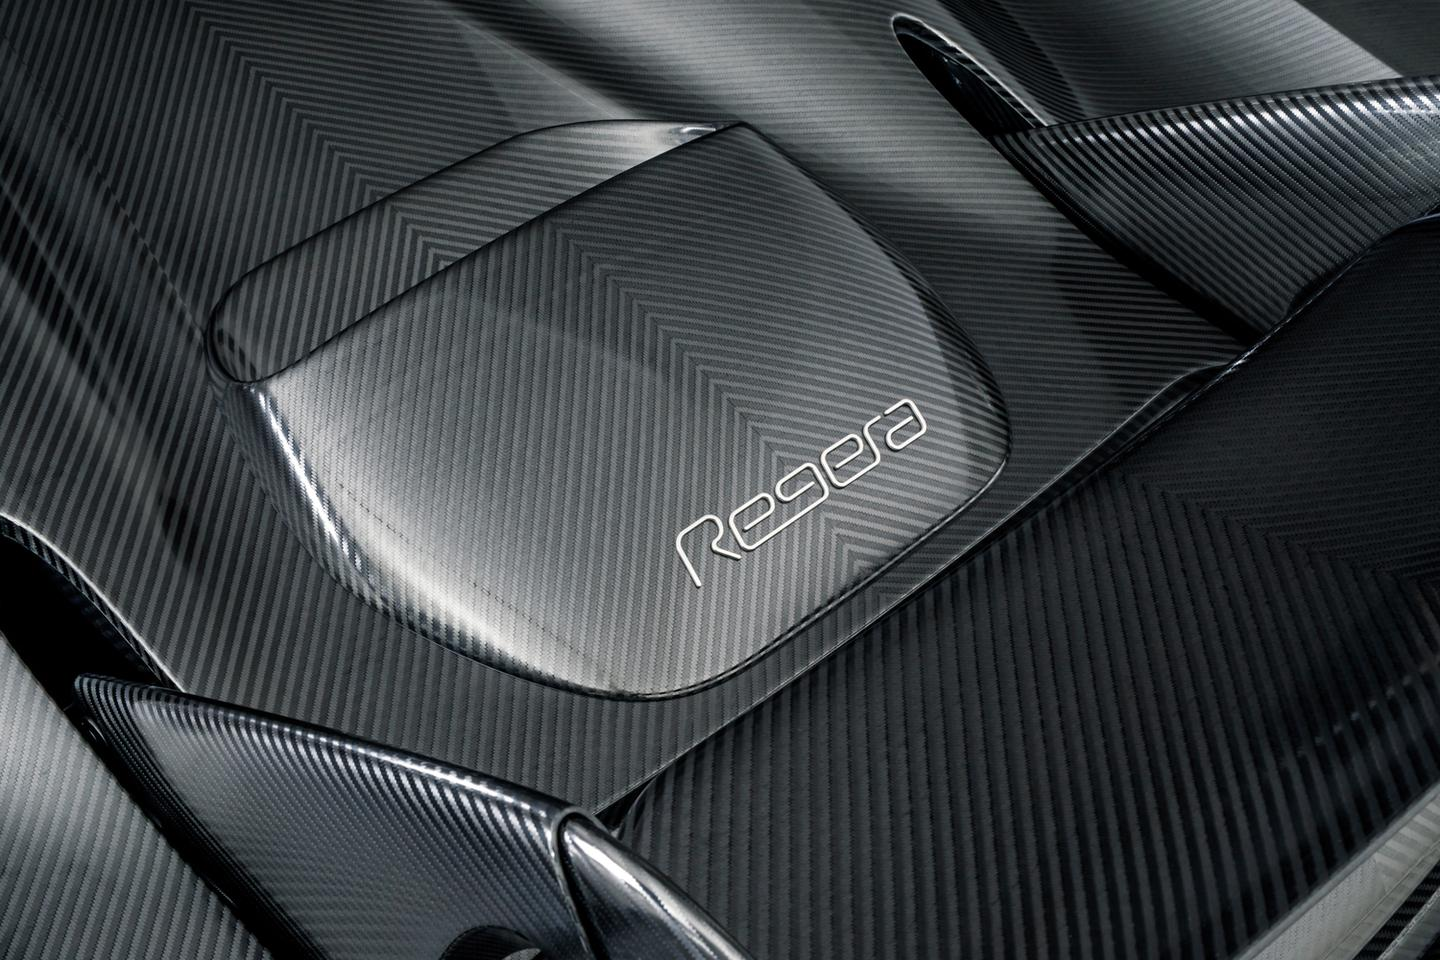 Koenigsegg's KNC Regera: the naked carbon has a graphite-like sheen as the light catches the strands